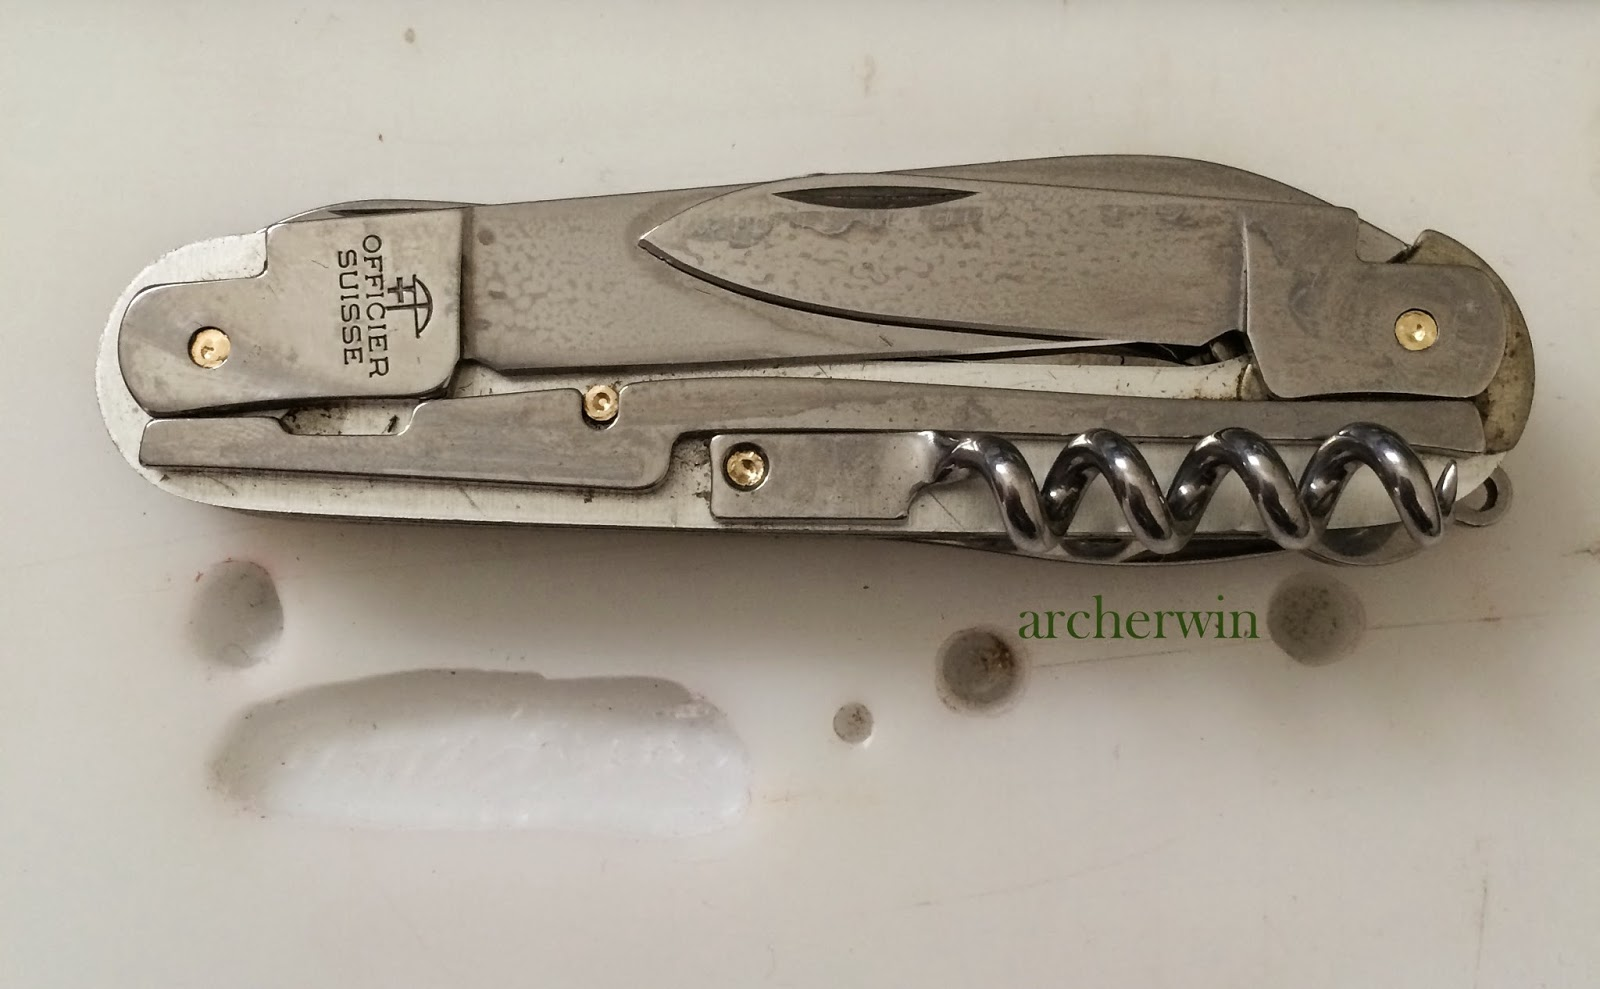 Archerwin S Swiss Army Knives Sak Deconstructed